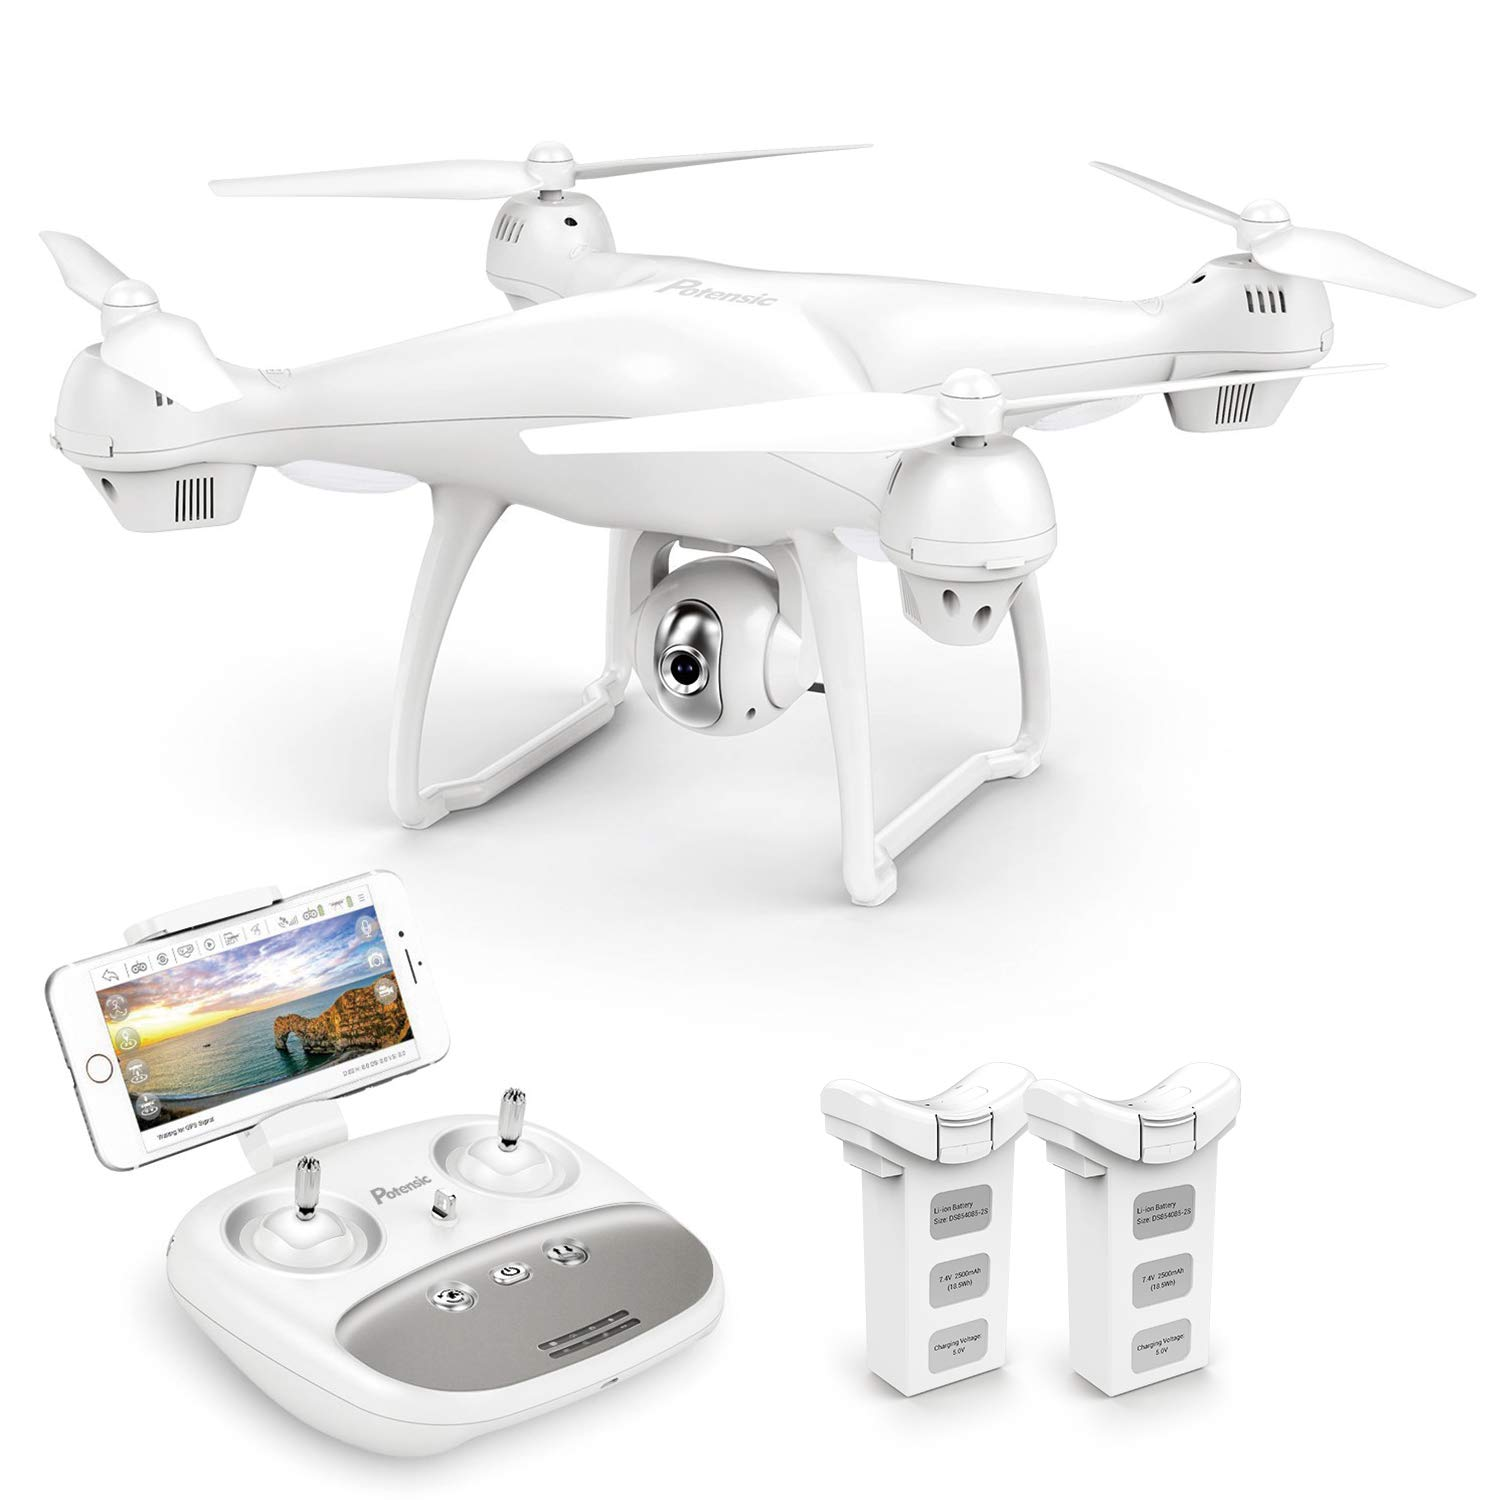 potensic-t35-gps-drone-rc-quadcopter-with-1080p-camera-fpv-live-video-dual-gps-return-home-follow-me-altitude-hold-2500mah-battery-long-control-range-2-batteries